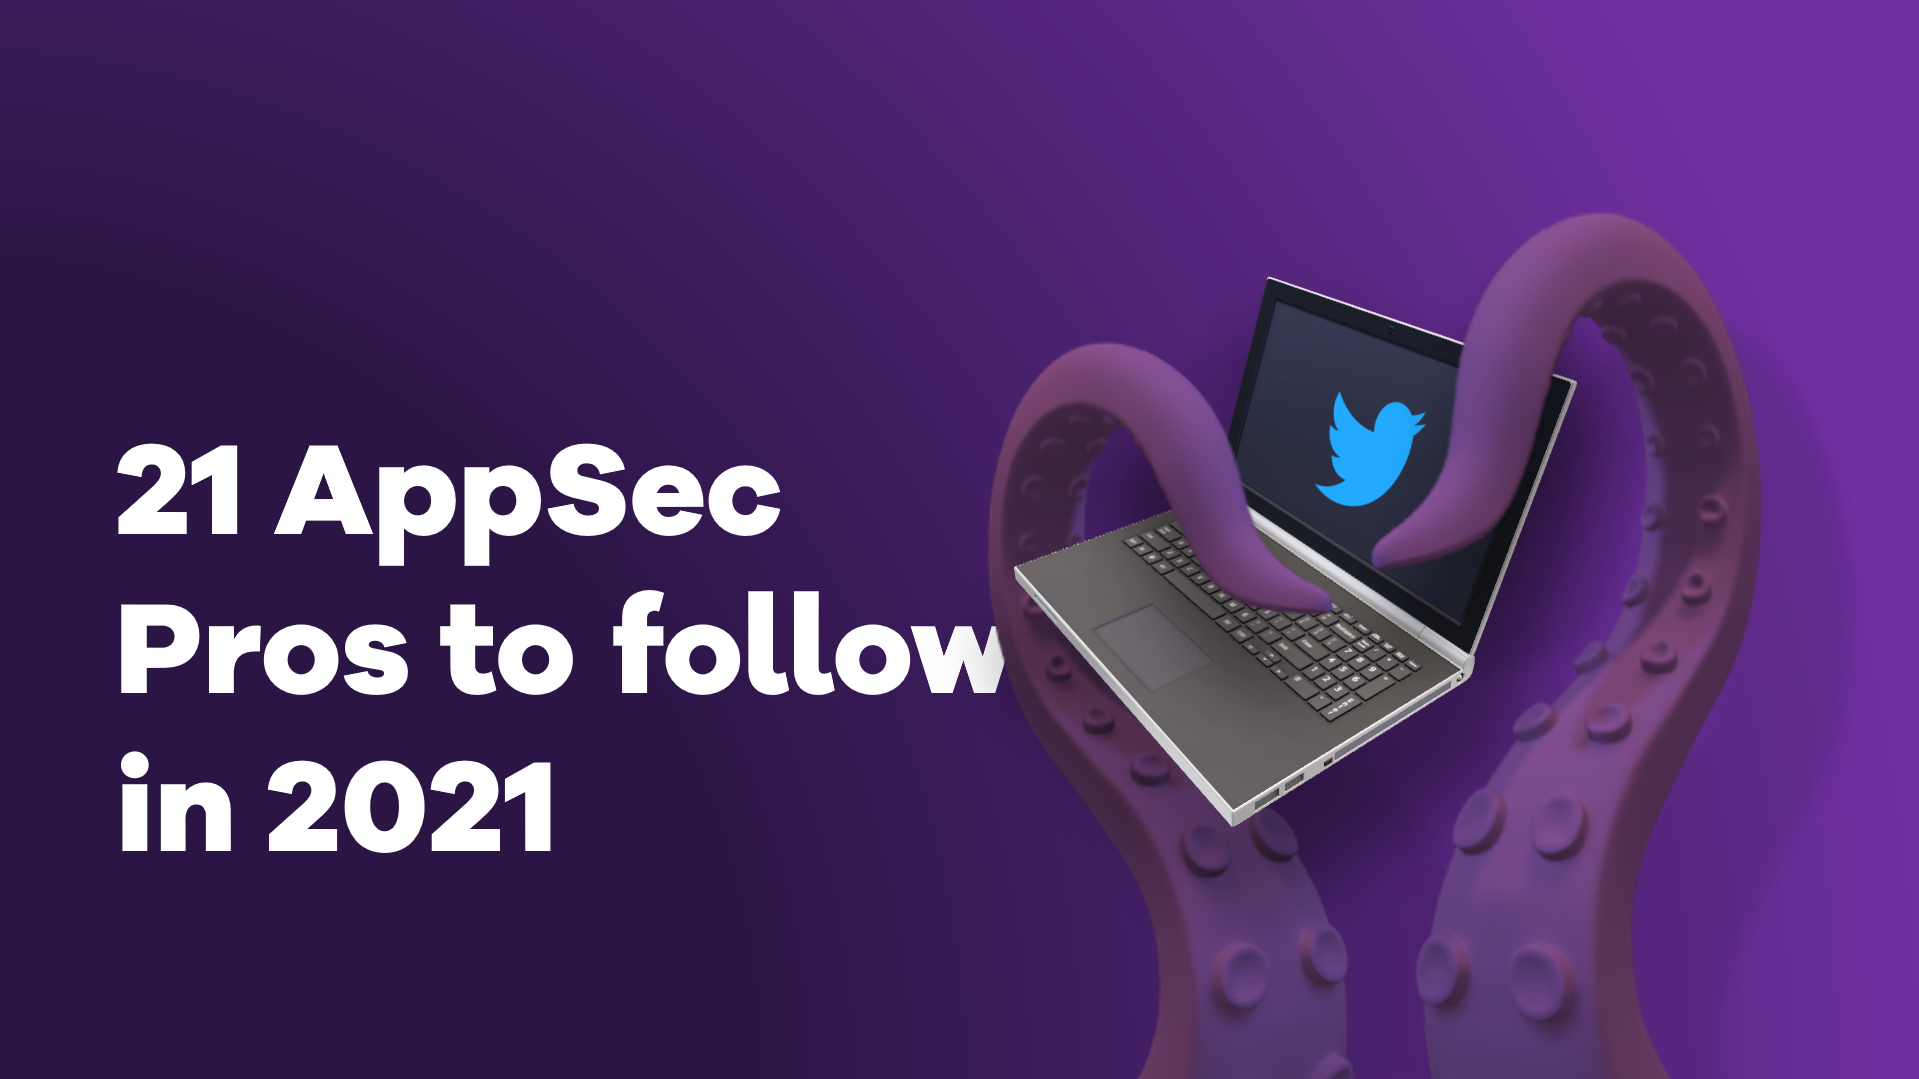 21 AppSec Pros to Follow in 2021